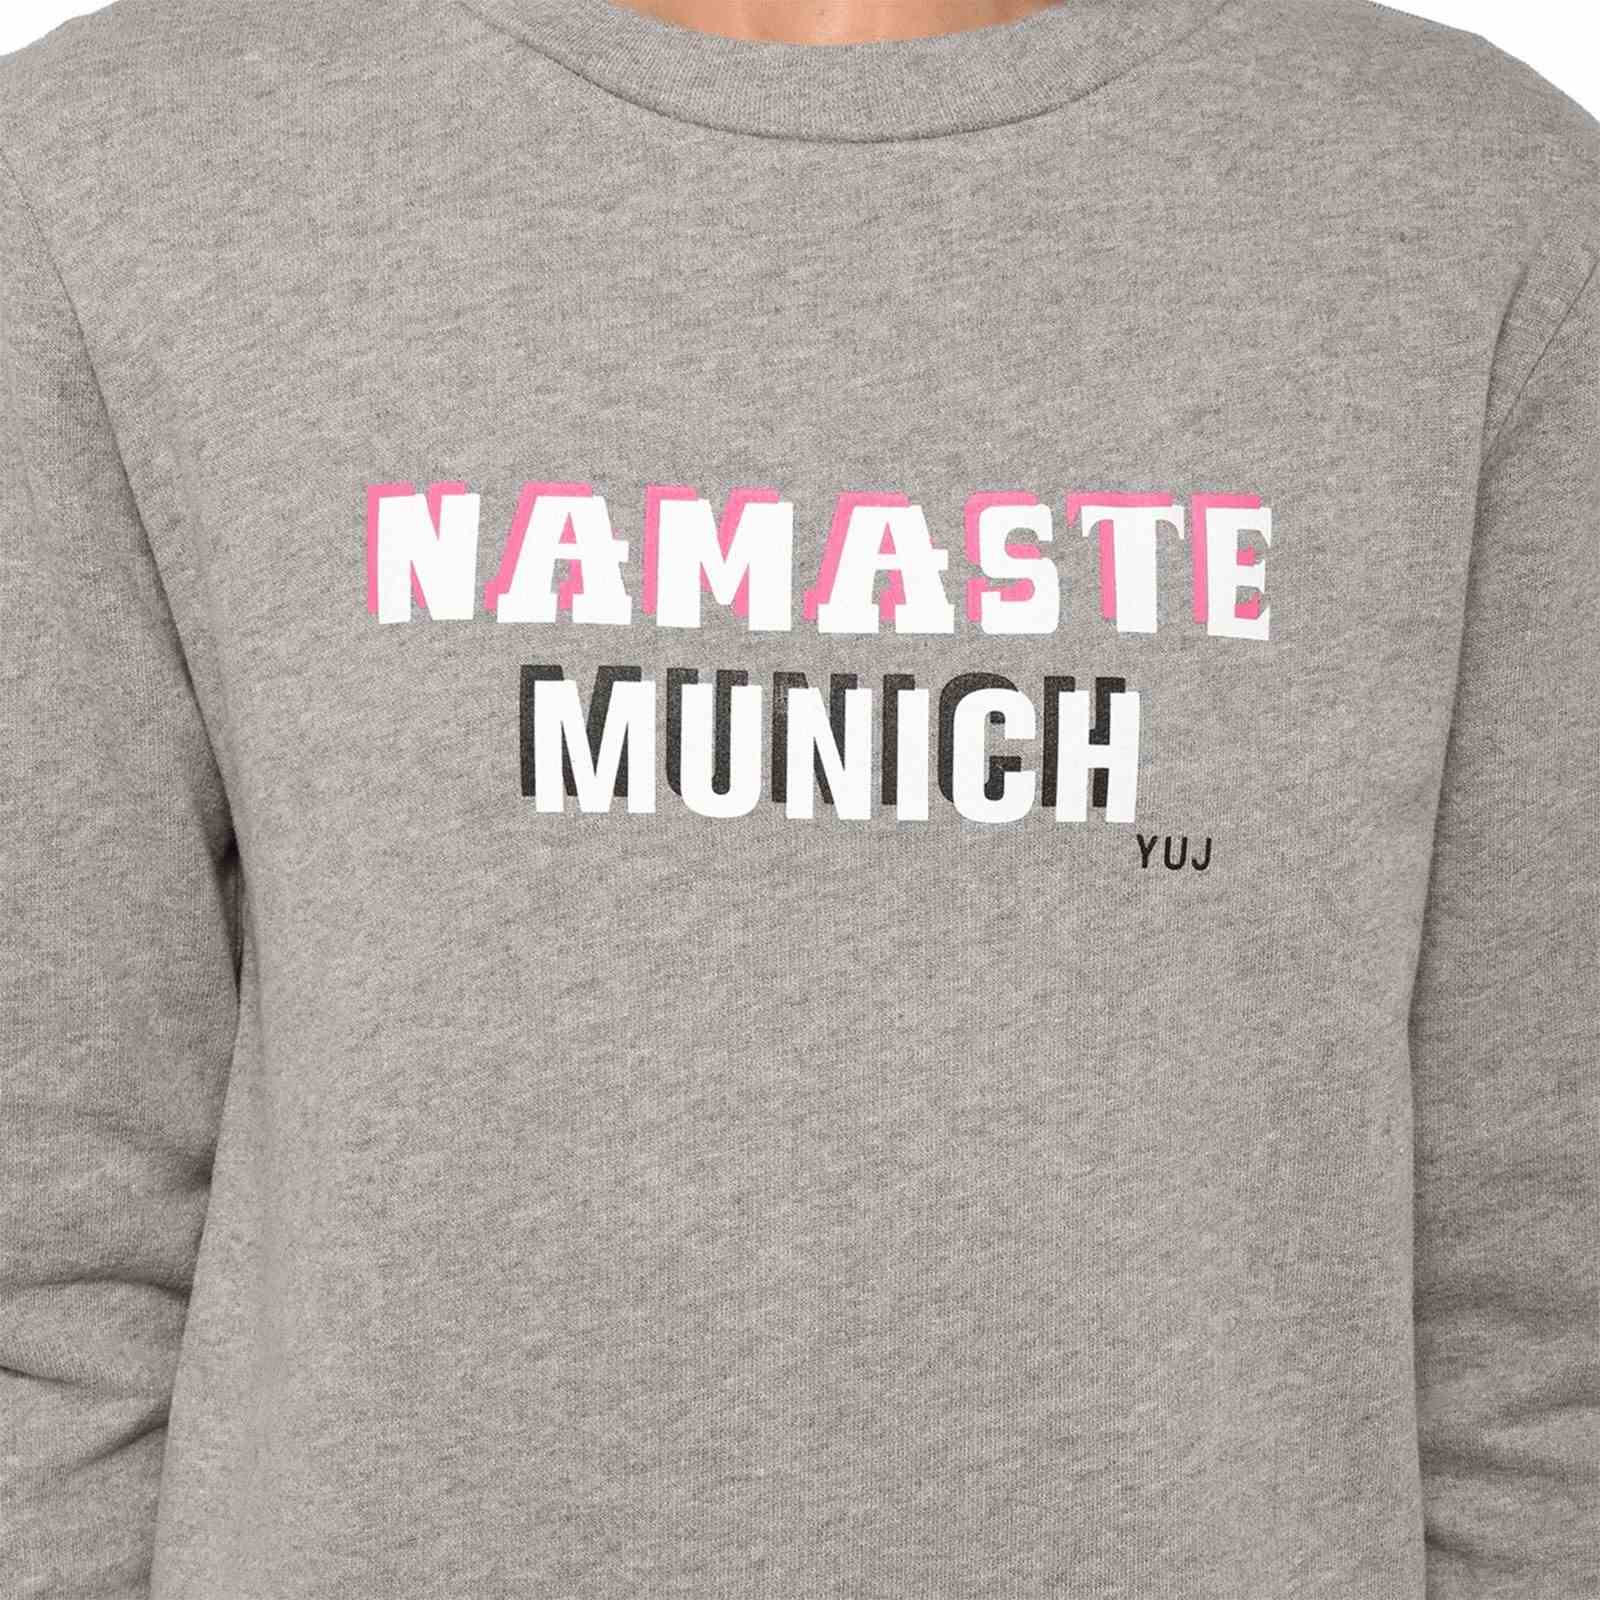 shirt Sweat Munich Yuj Gris Yoga Namaste De ECqvw5txv